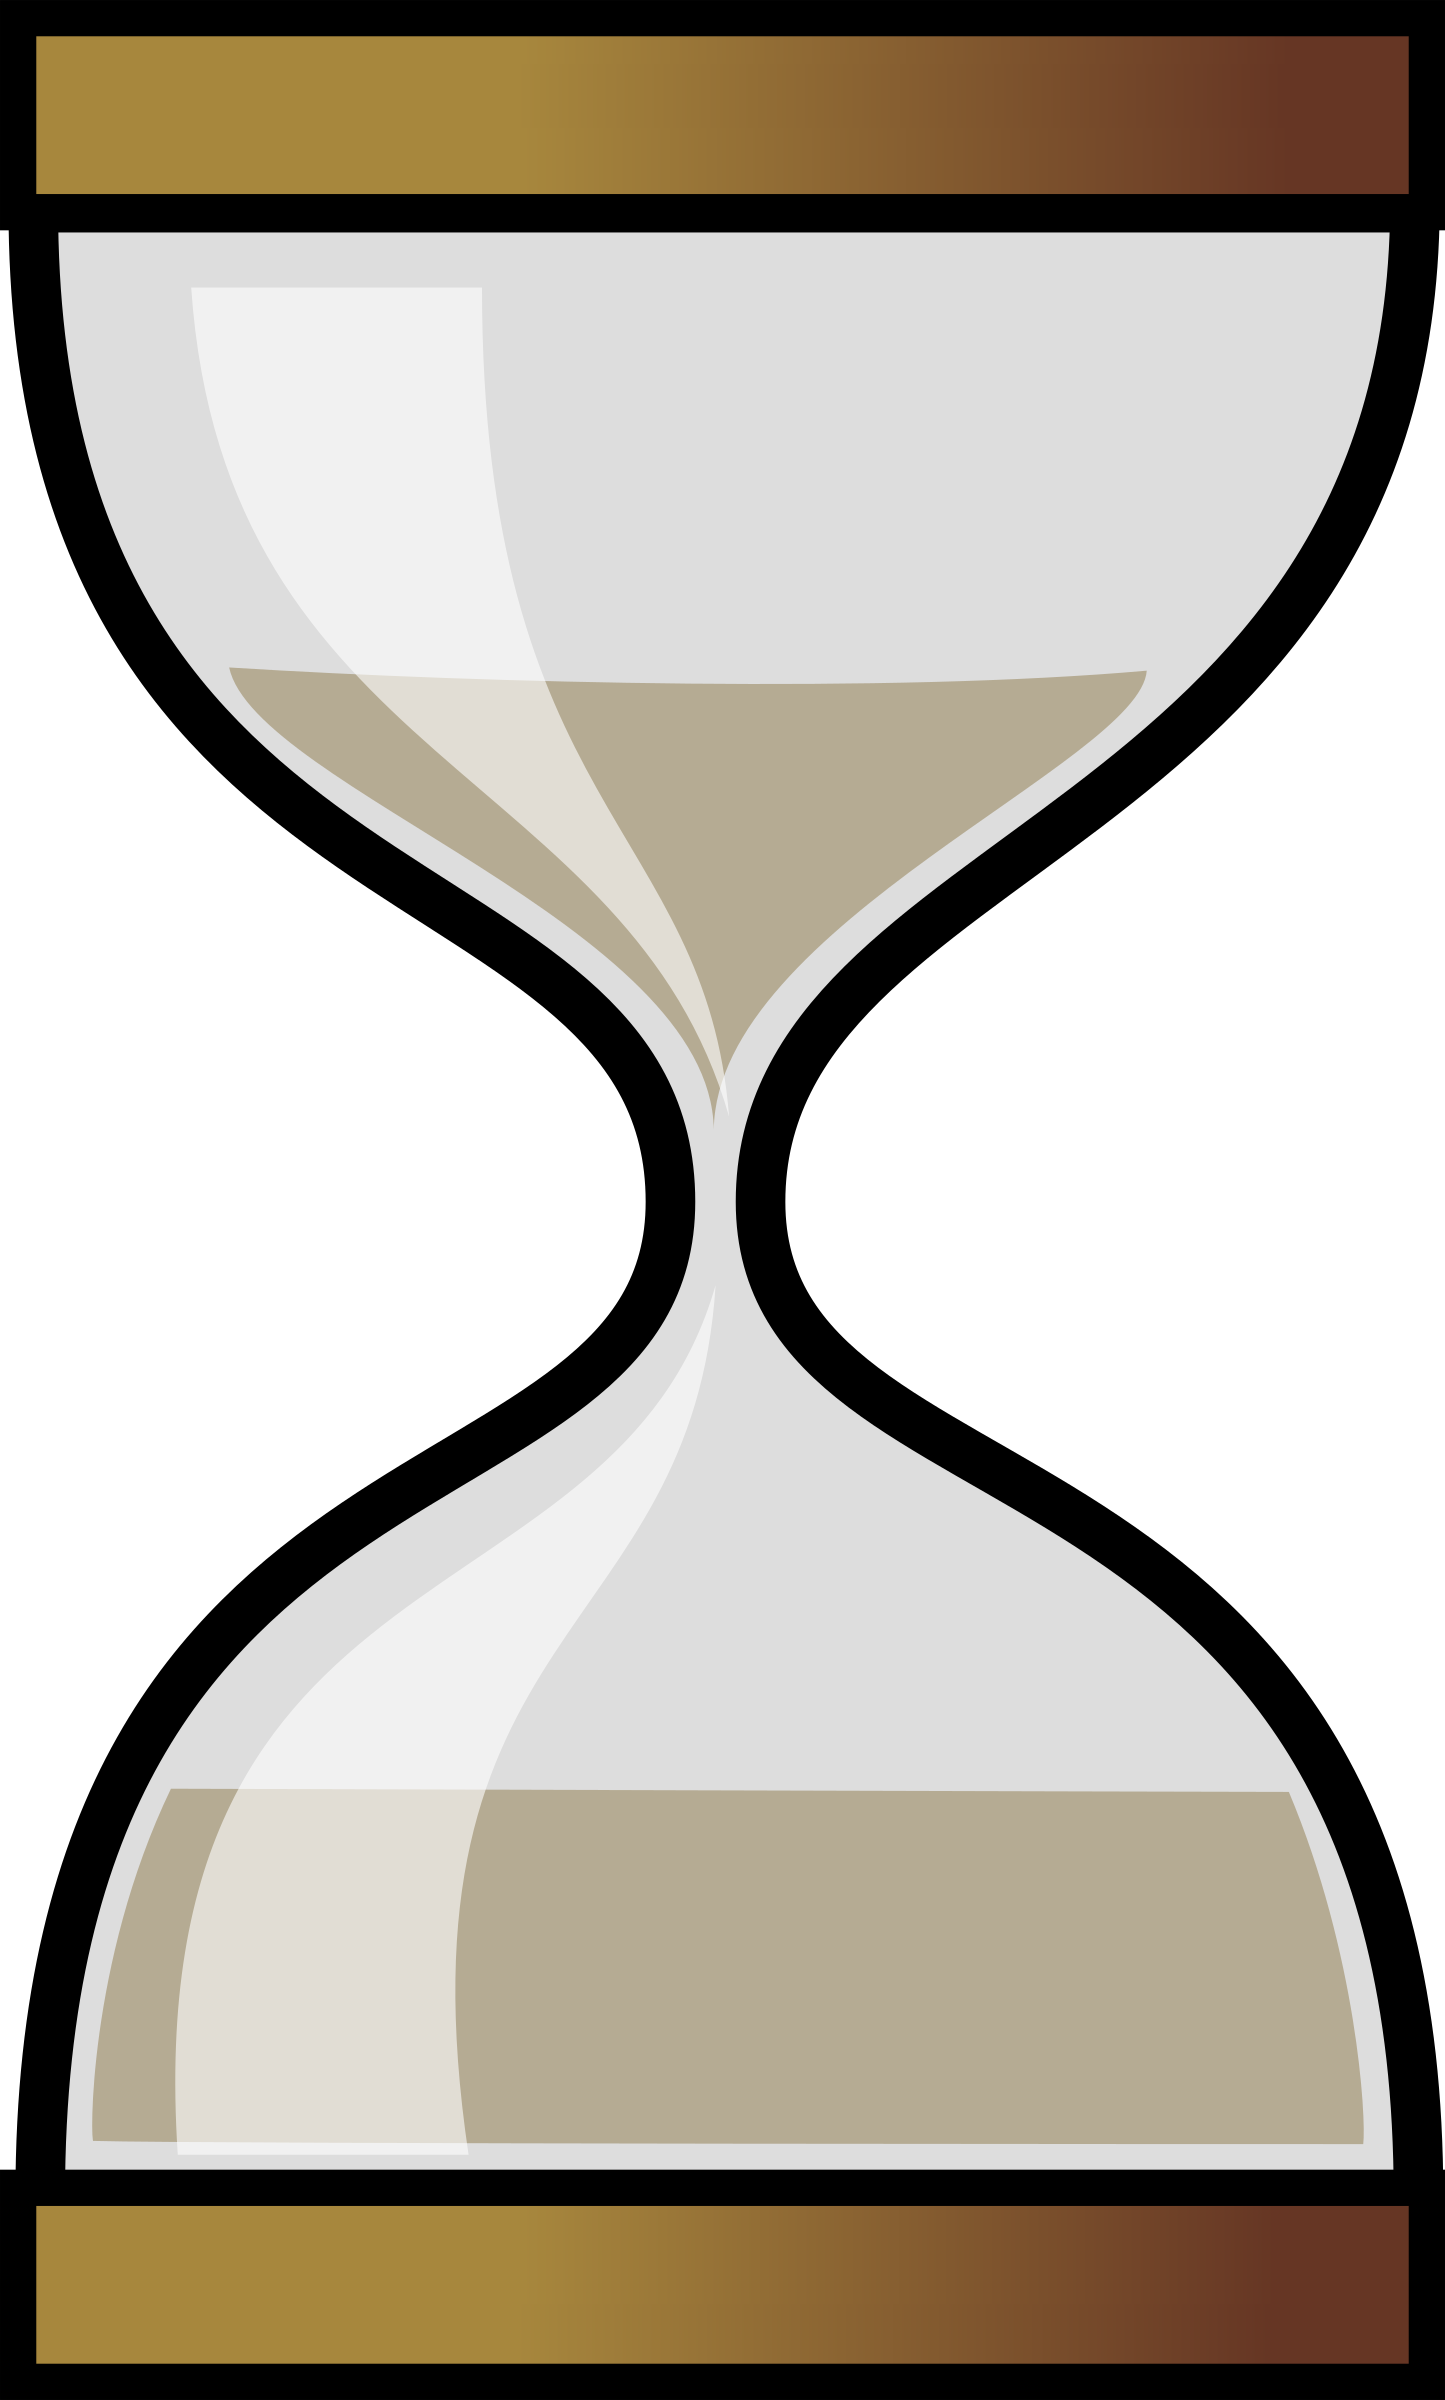 Hourglass clipart old. Sandglass big image png